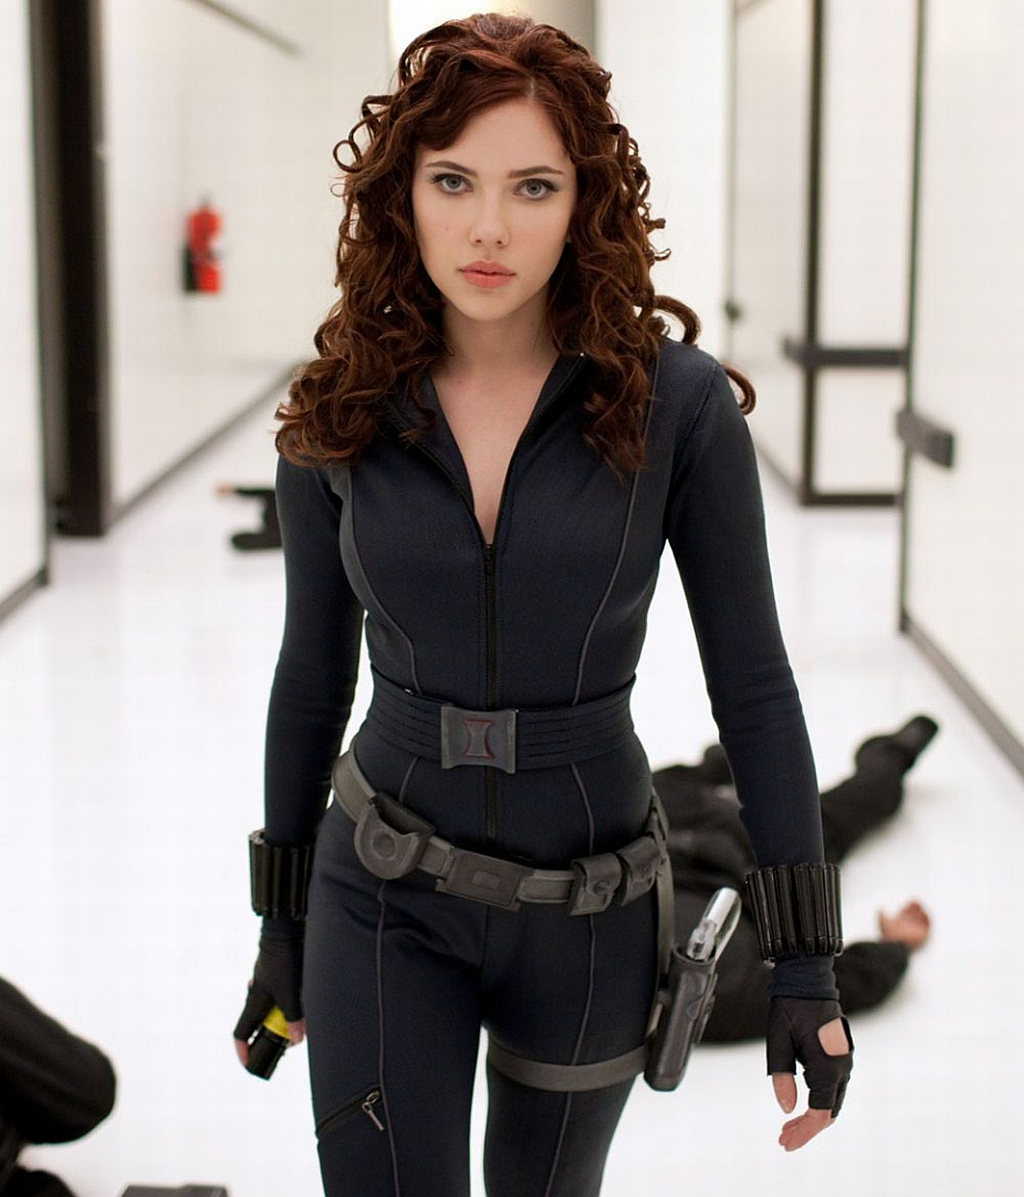 http://4.bp.blogspot.com/-ijsy55rfuUE/T0xVOzNitCI/AAAAAAAAAAs/Cd1h_jB05TI/s1600/scarlett-johansson-iron-man-2-black-widow-stills-hd-hq.jpg